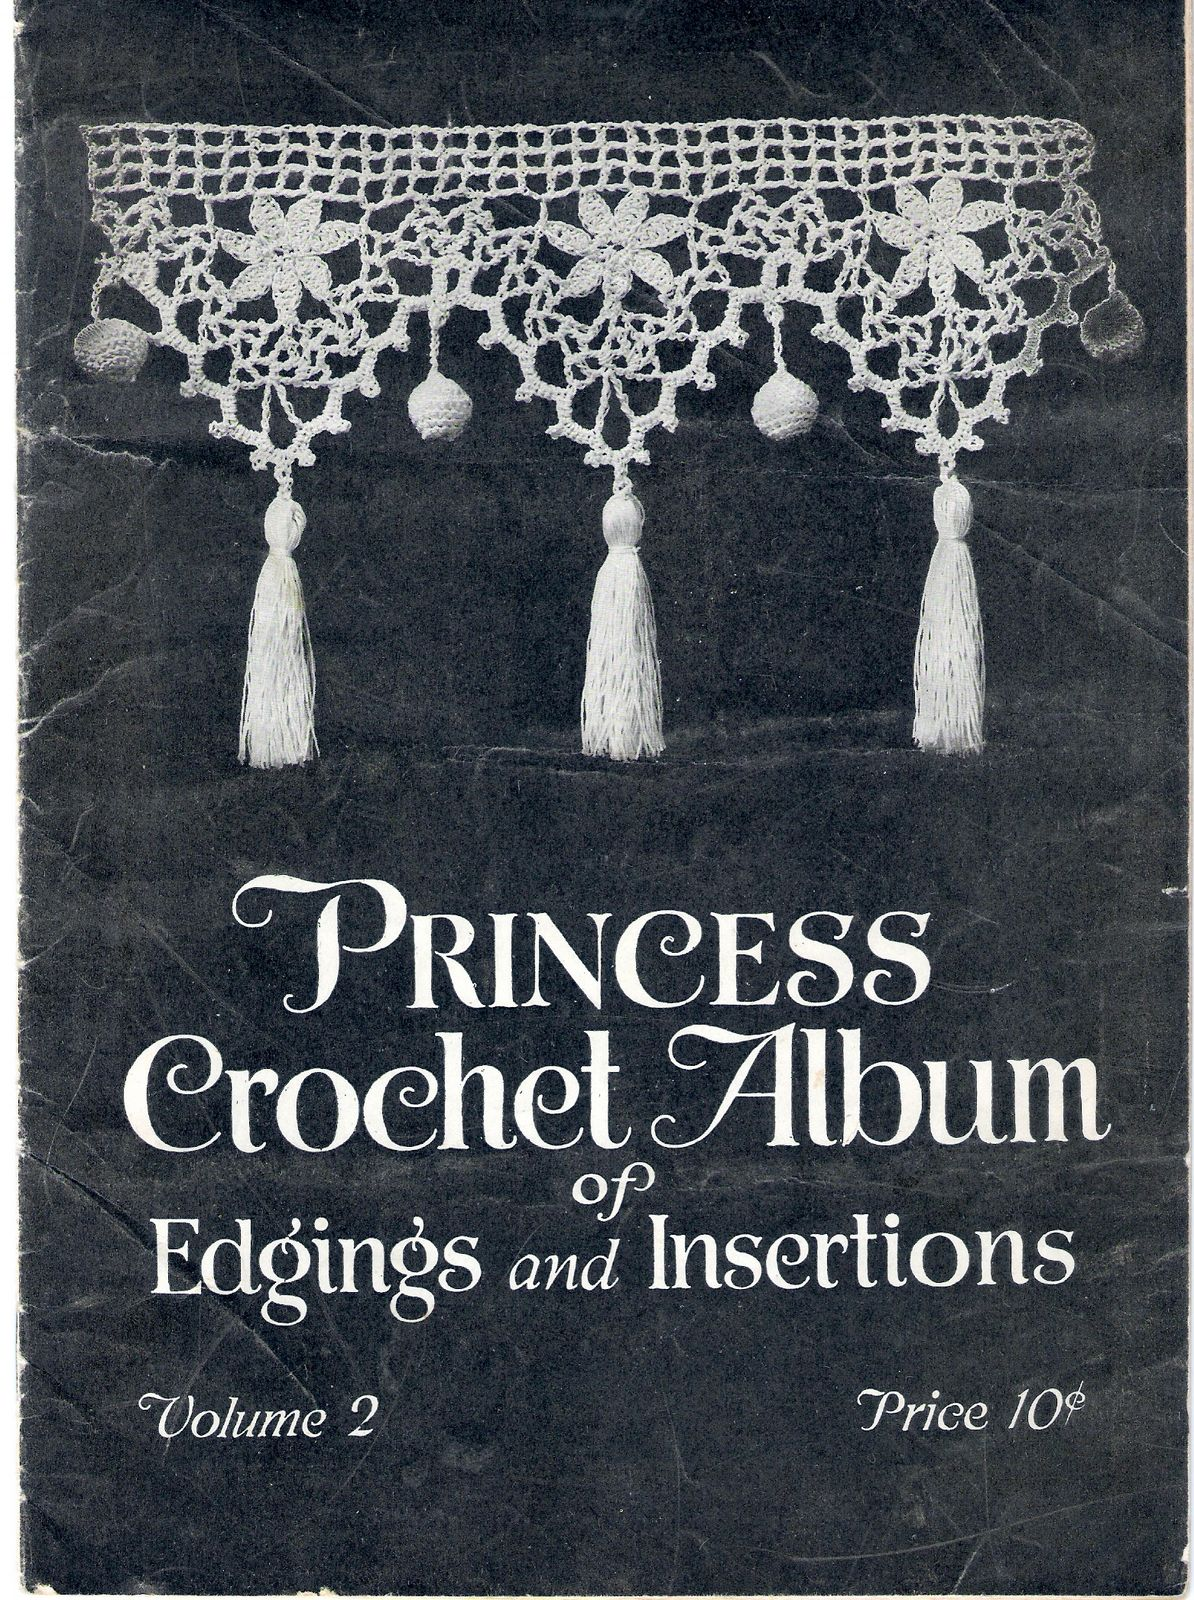 1910's Crochet - Princess Crochet Album of Edgings and Insertions Vol. 2